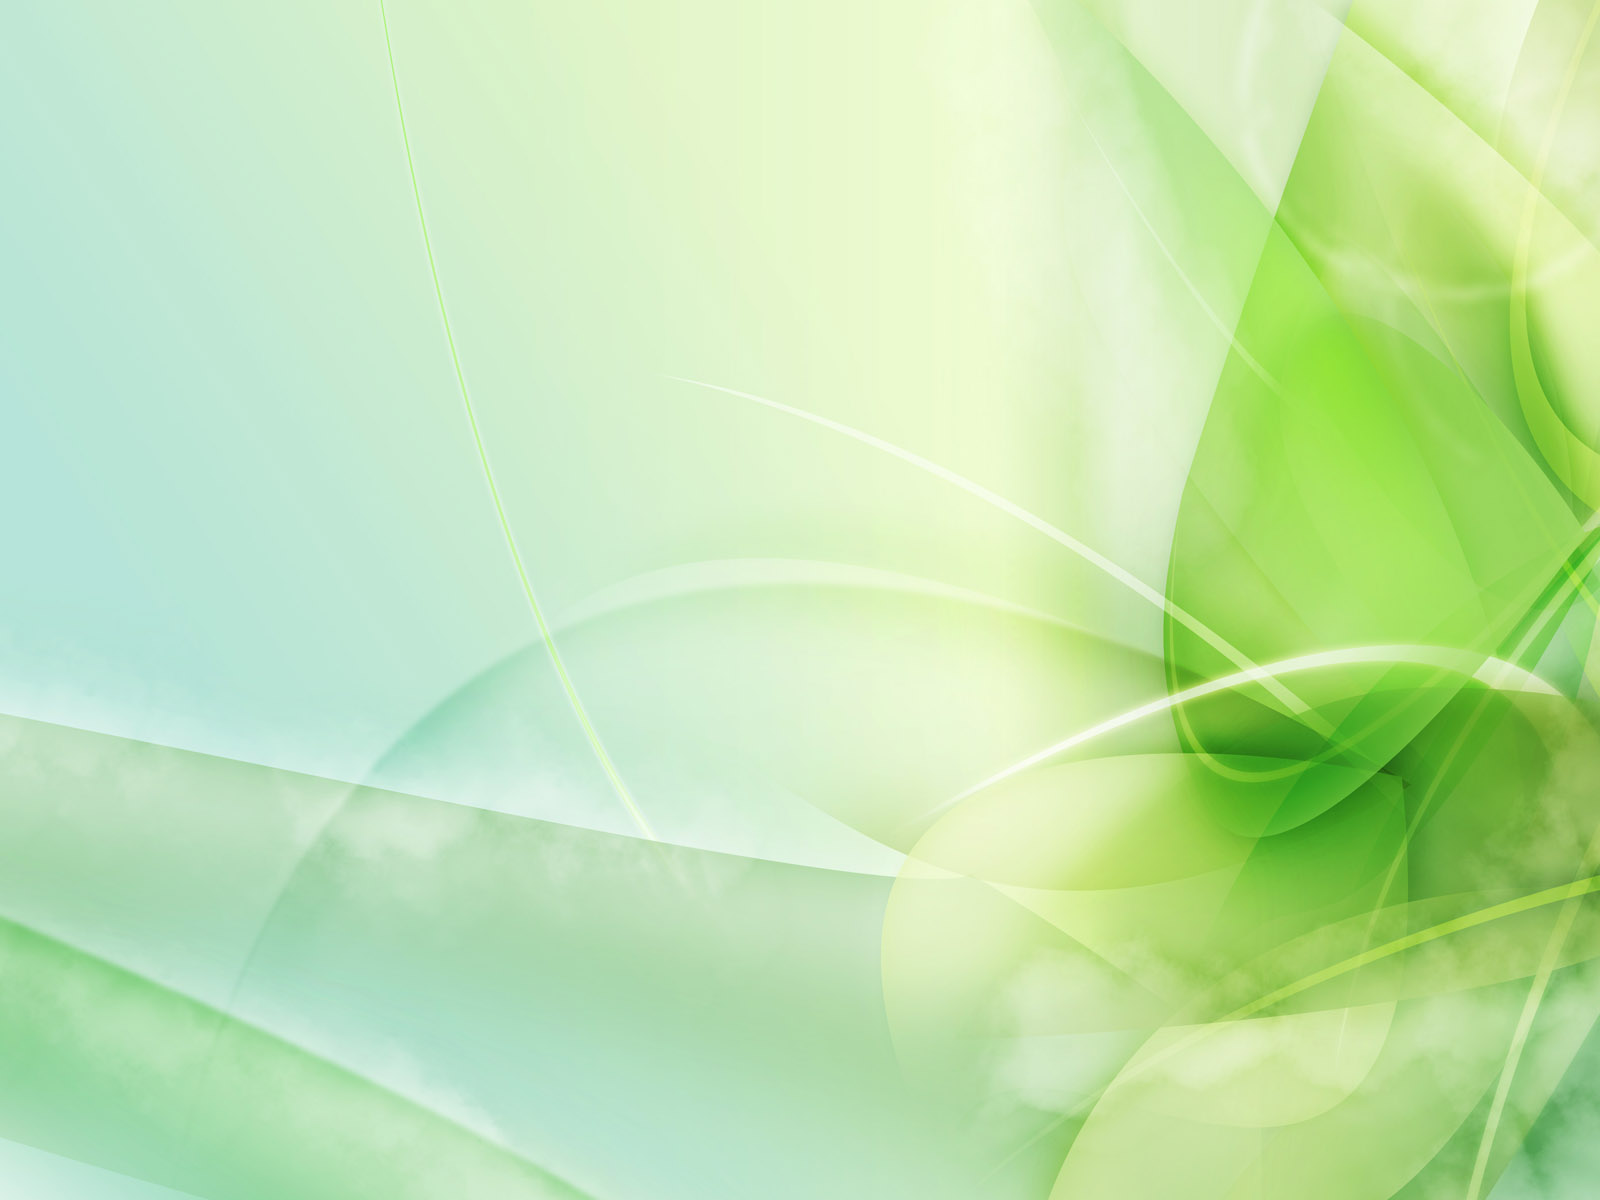 Abstract Background   Wallpaper 17905 1600x1200